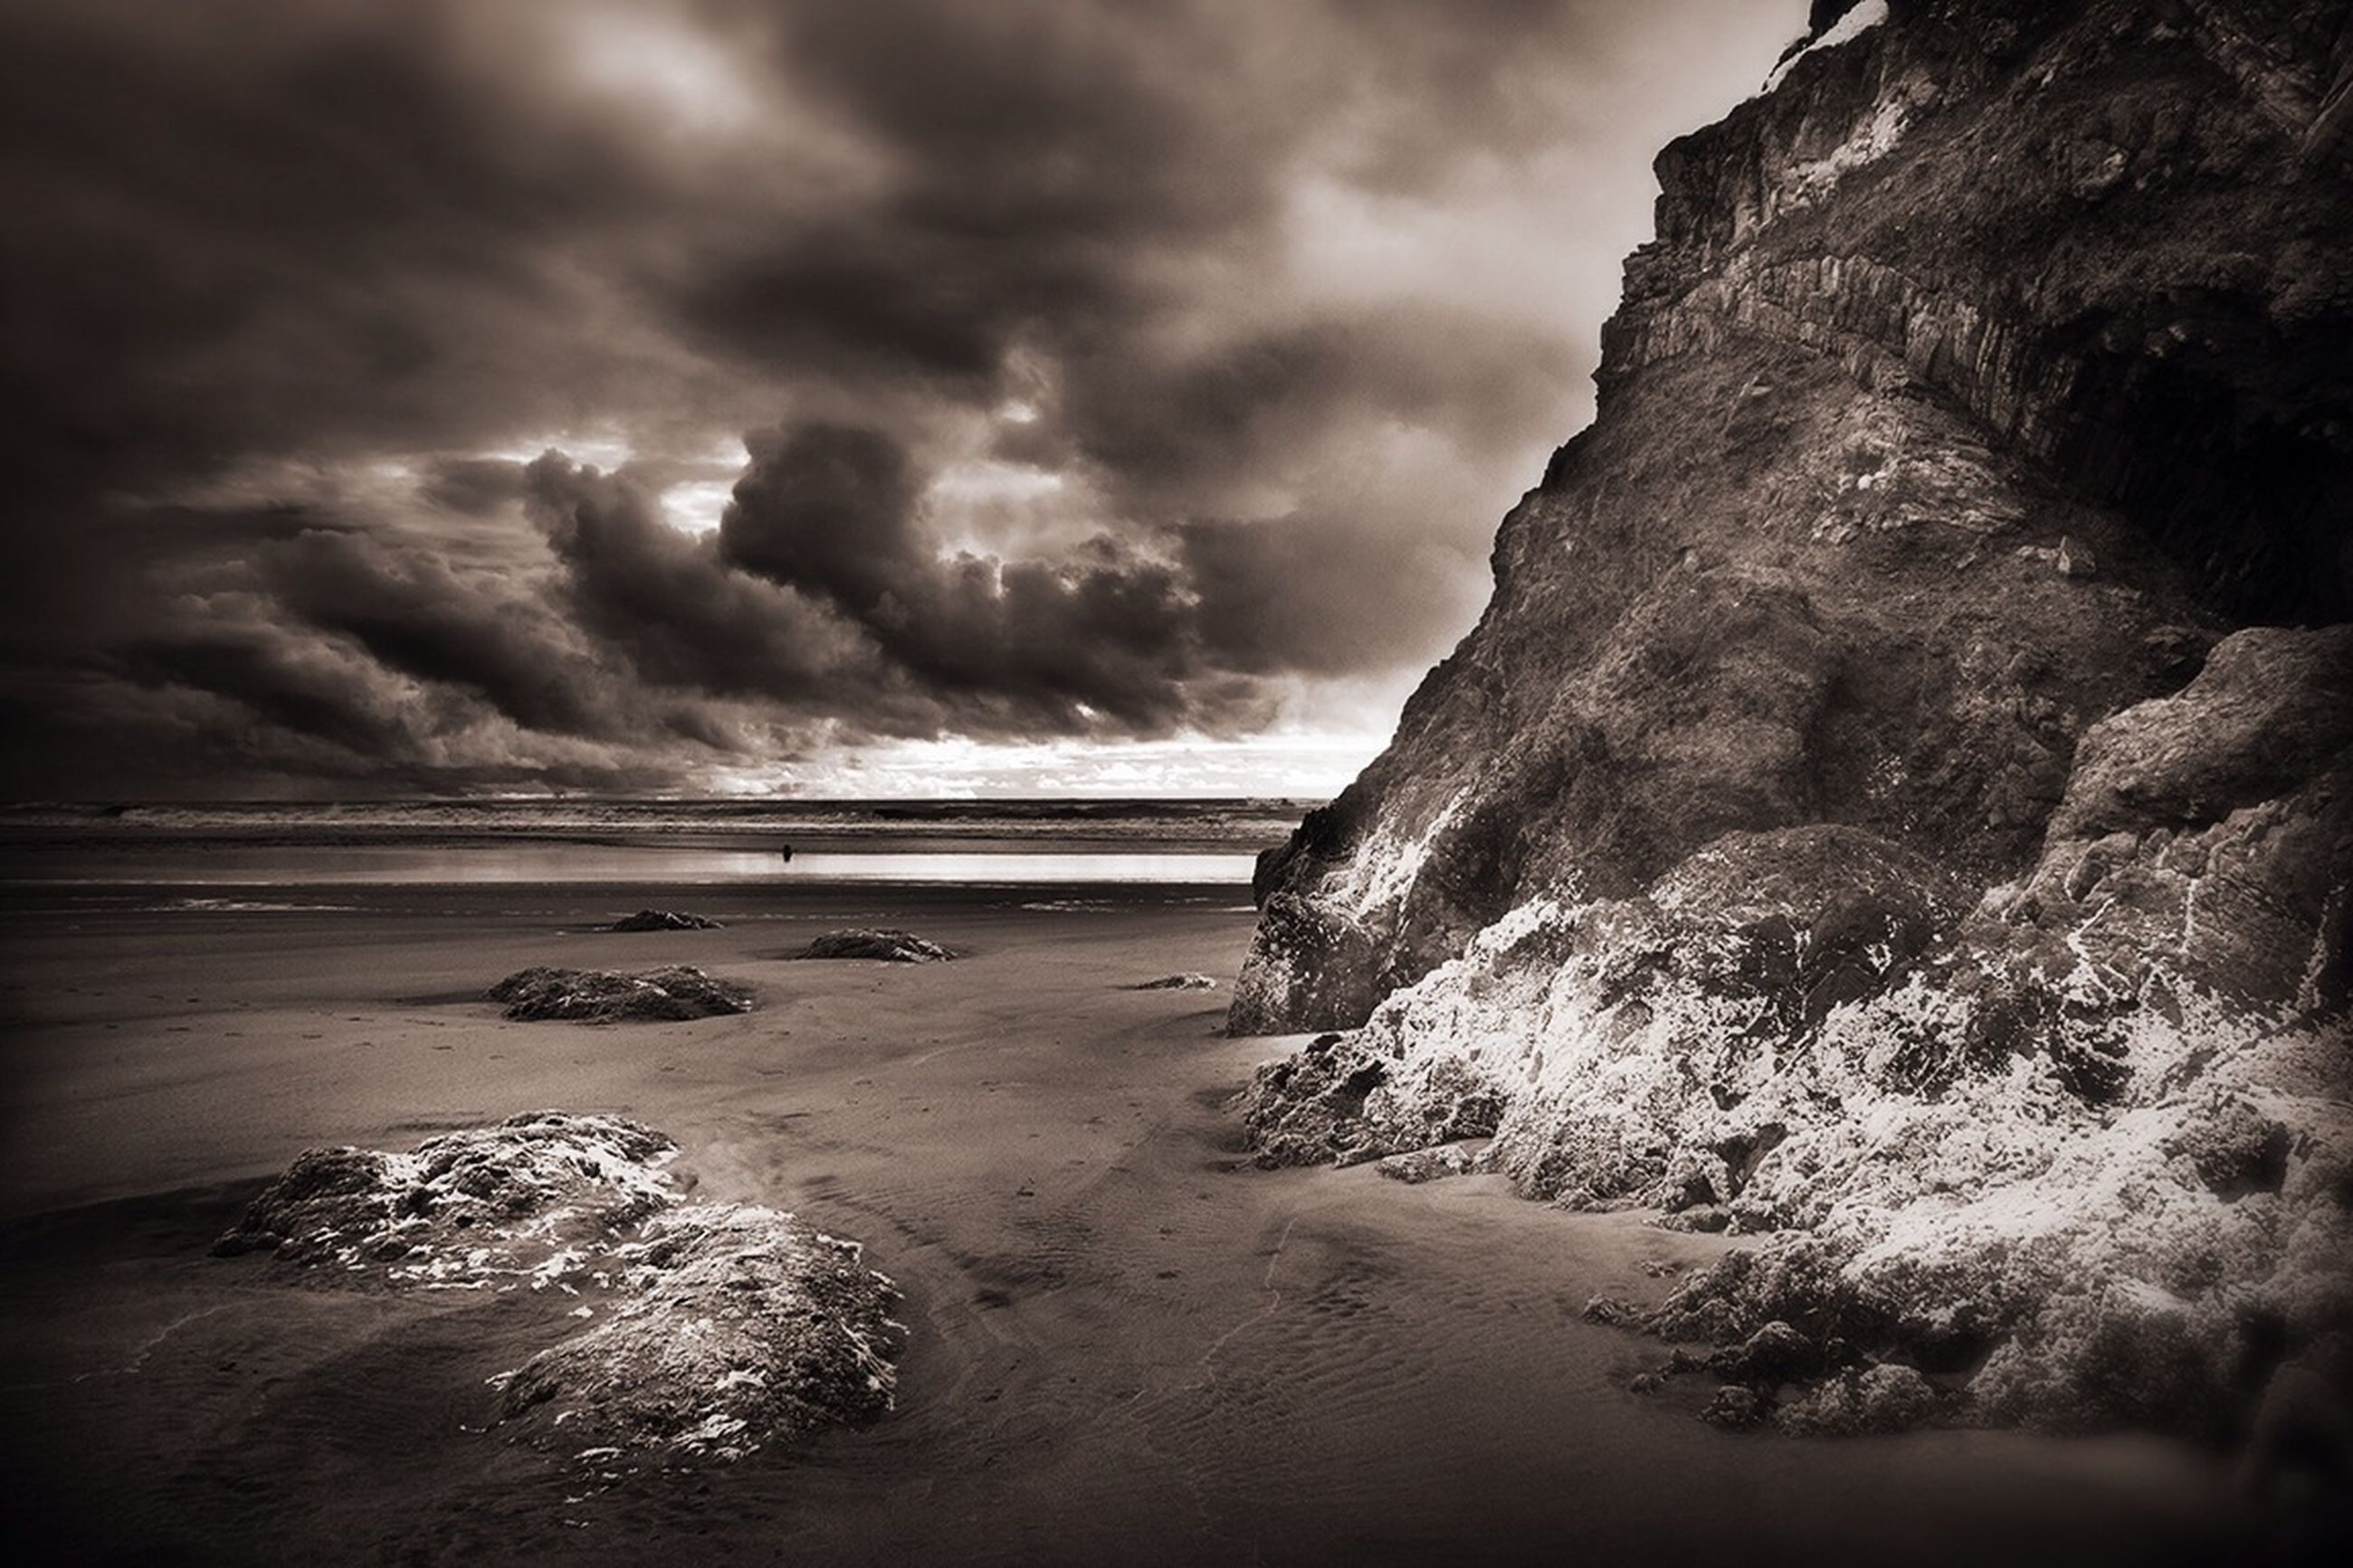 sky, sea, water, beach, cloud - sky, tranquil scene, tranquility, scenics, cloudy, beauty in nature, nature, horizon over water, shore, rock - object, rock formation, cloud, sand, overcast, idyllic, coastline